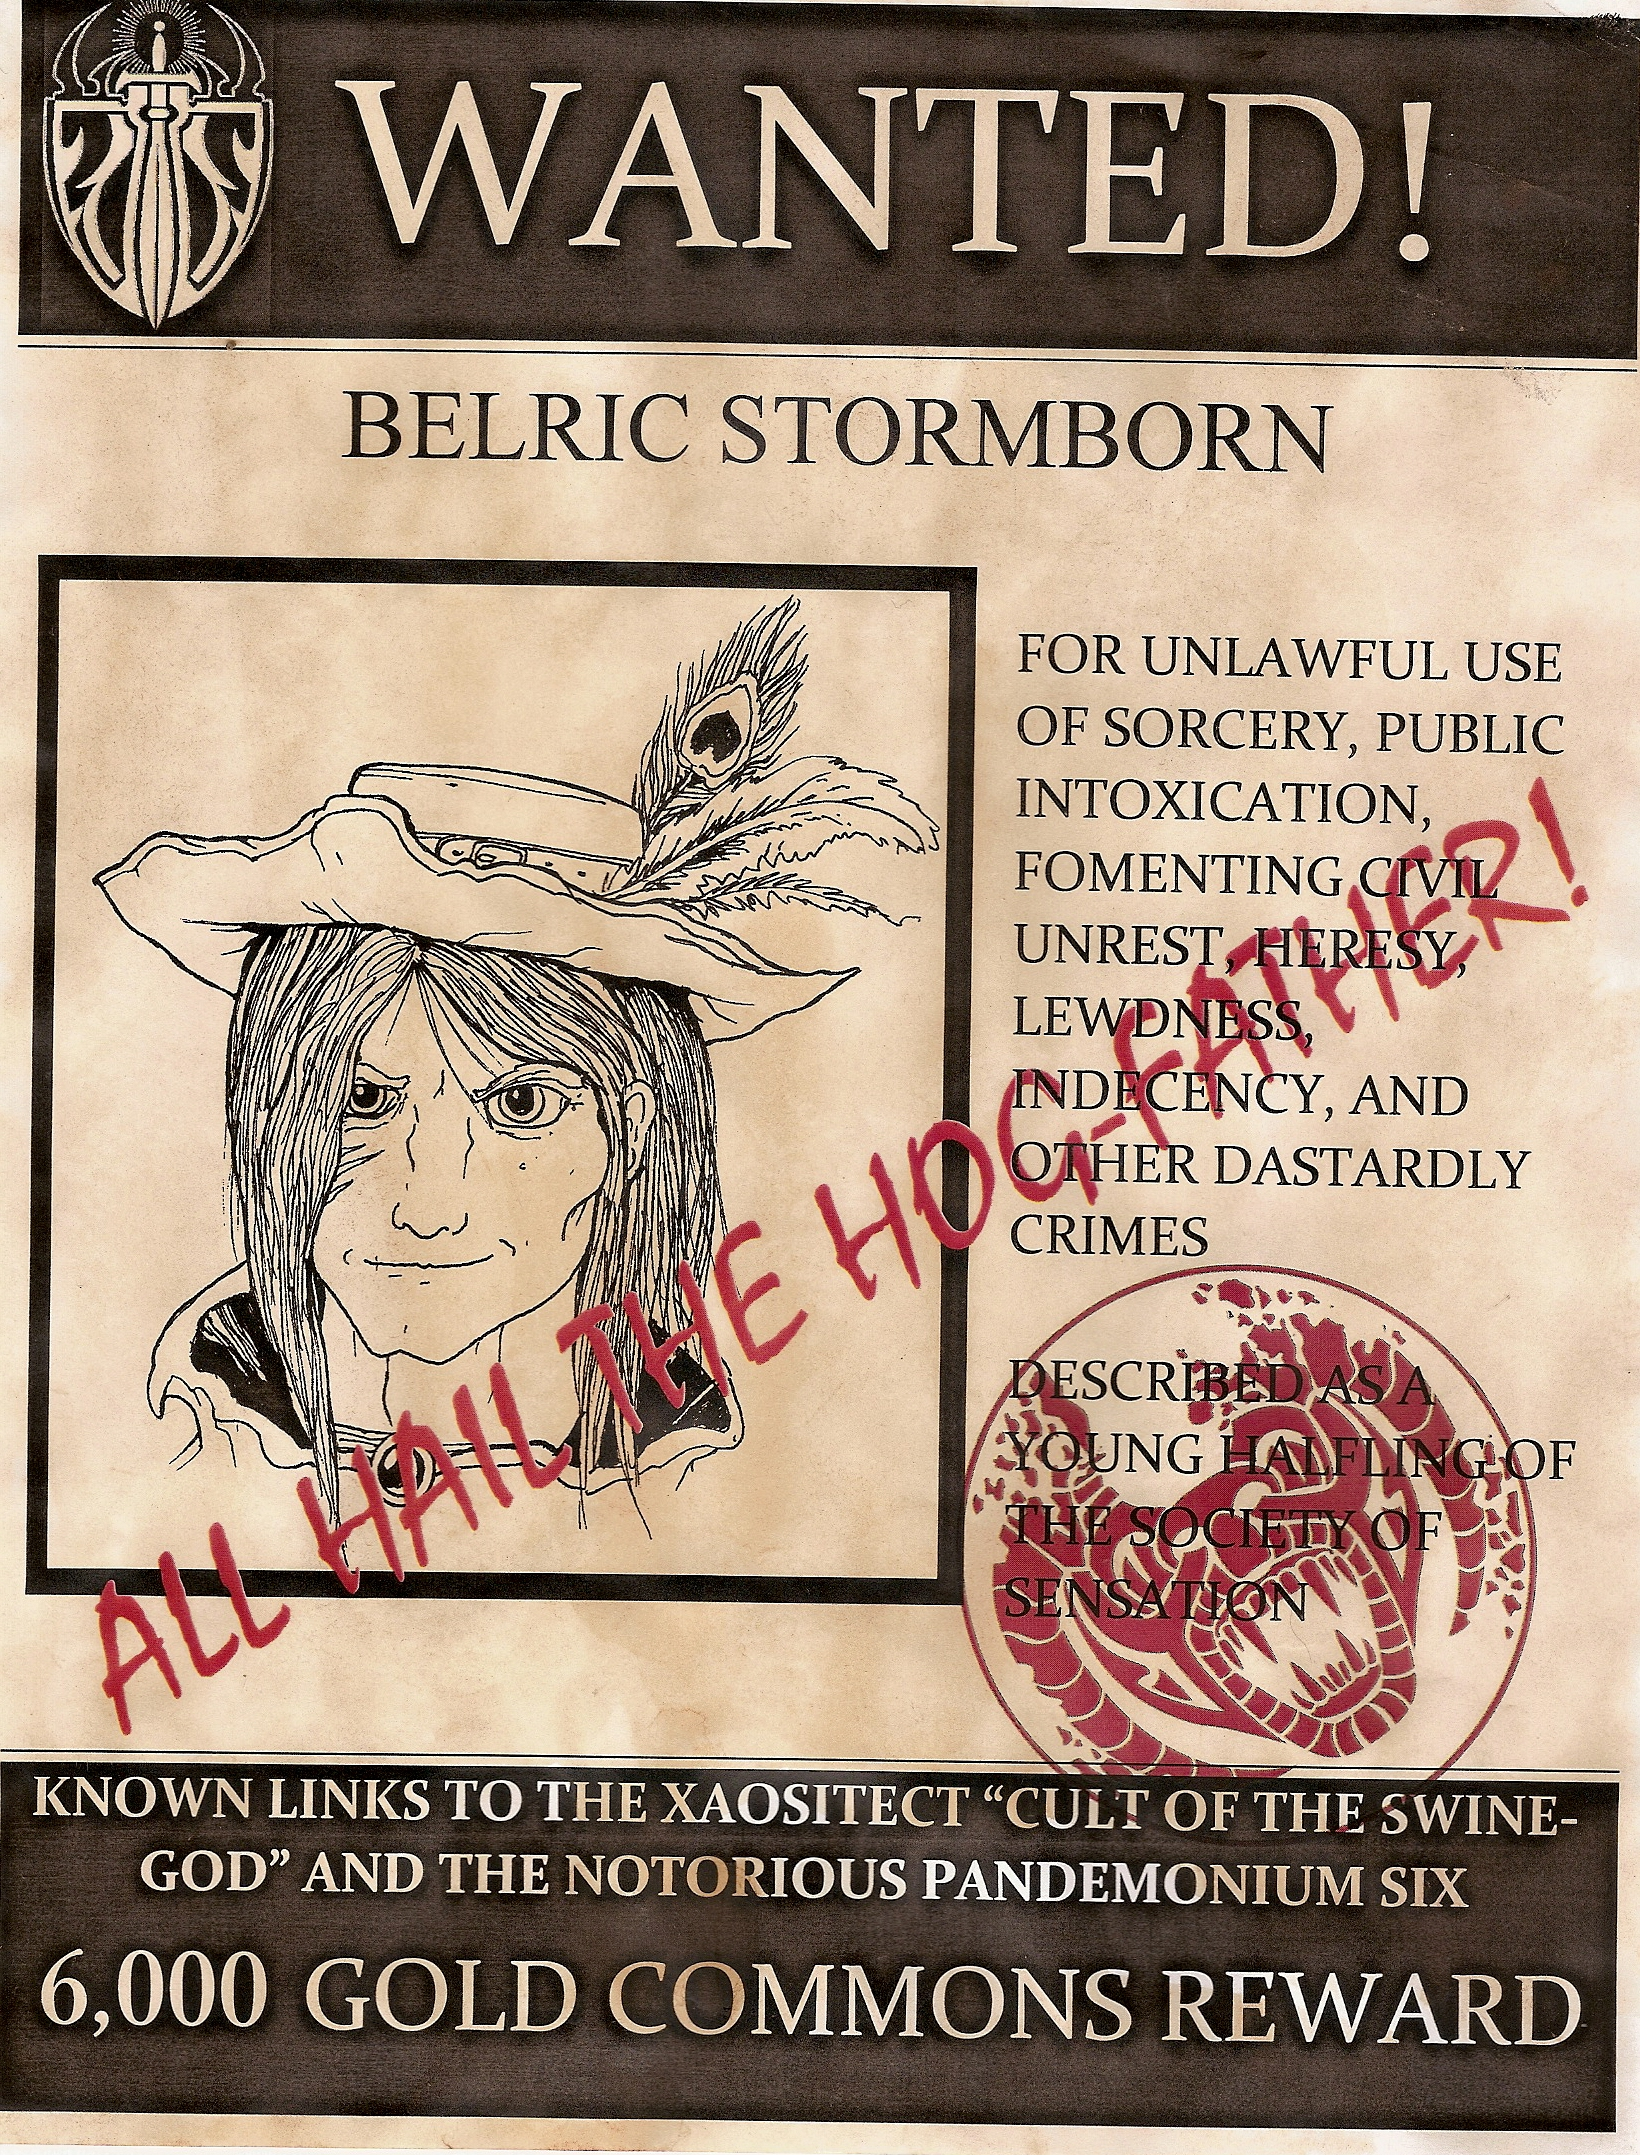 Wanted Belric